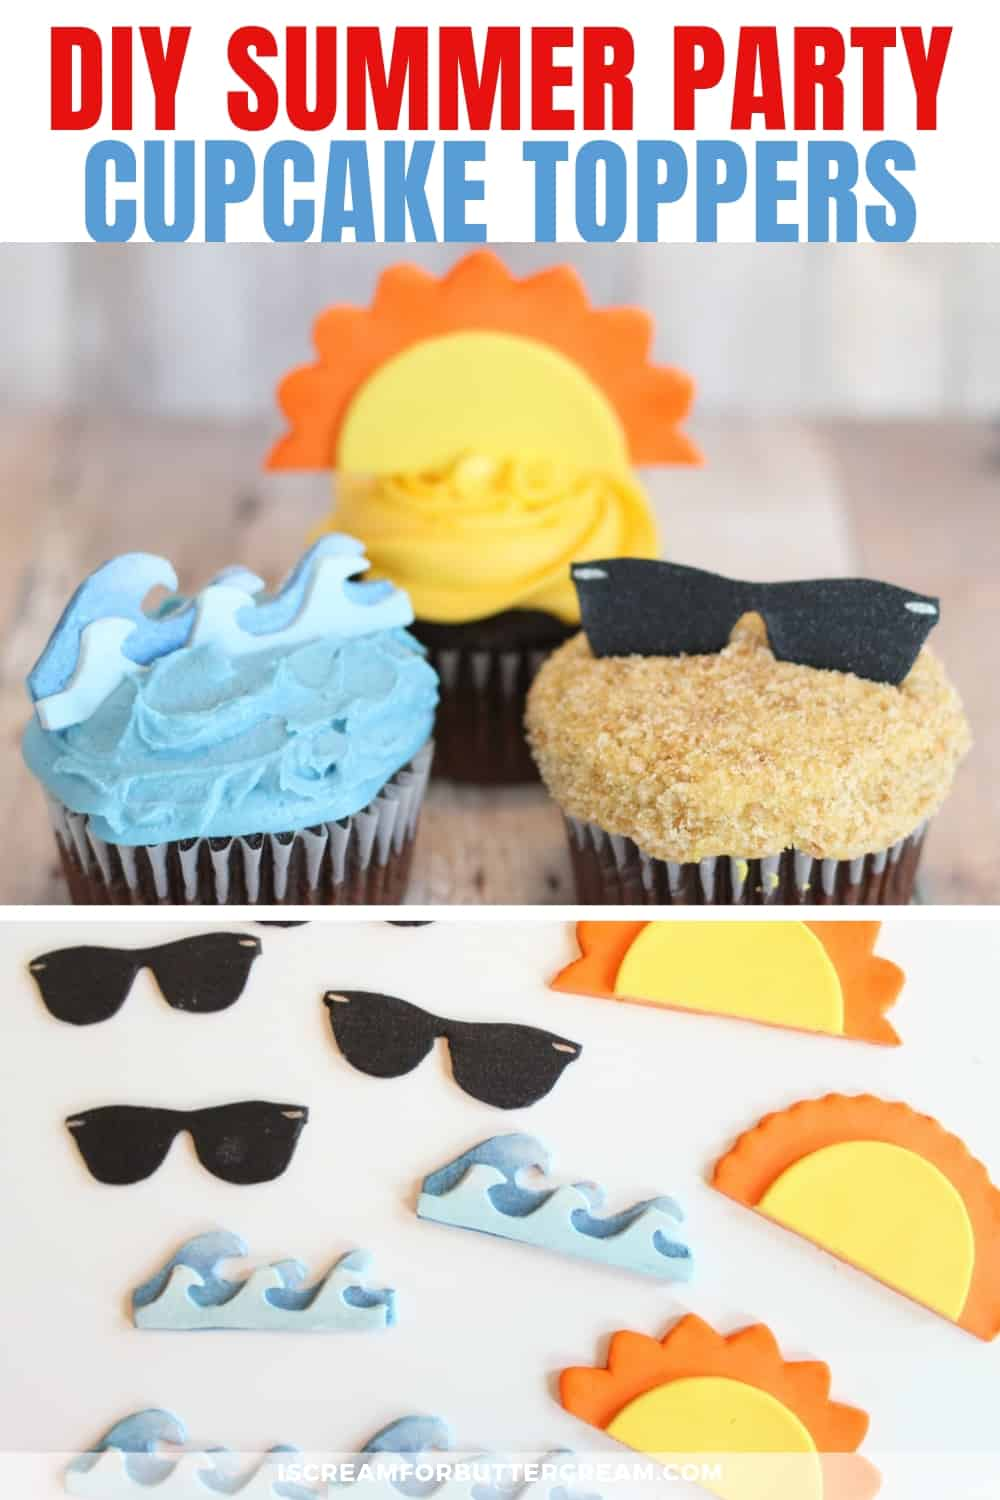 DIY Summer Cupcake Toppers new pin graphic 2